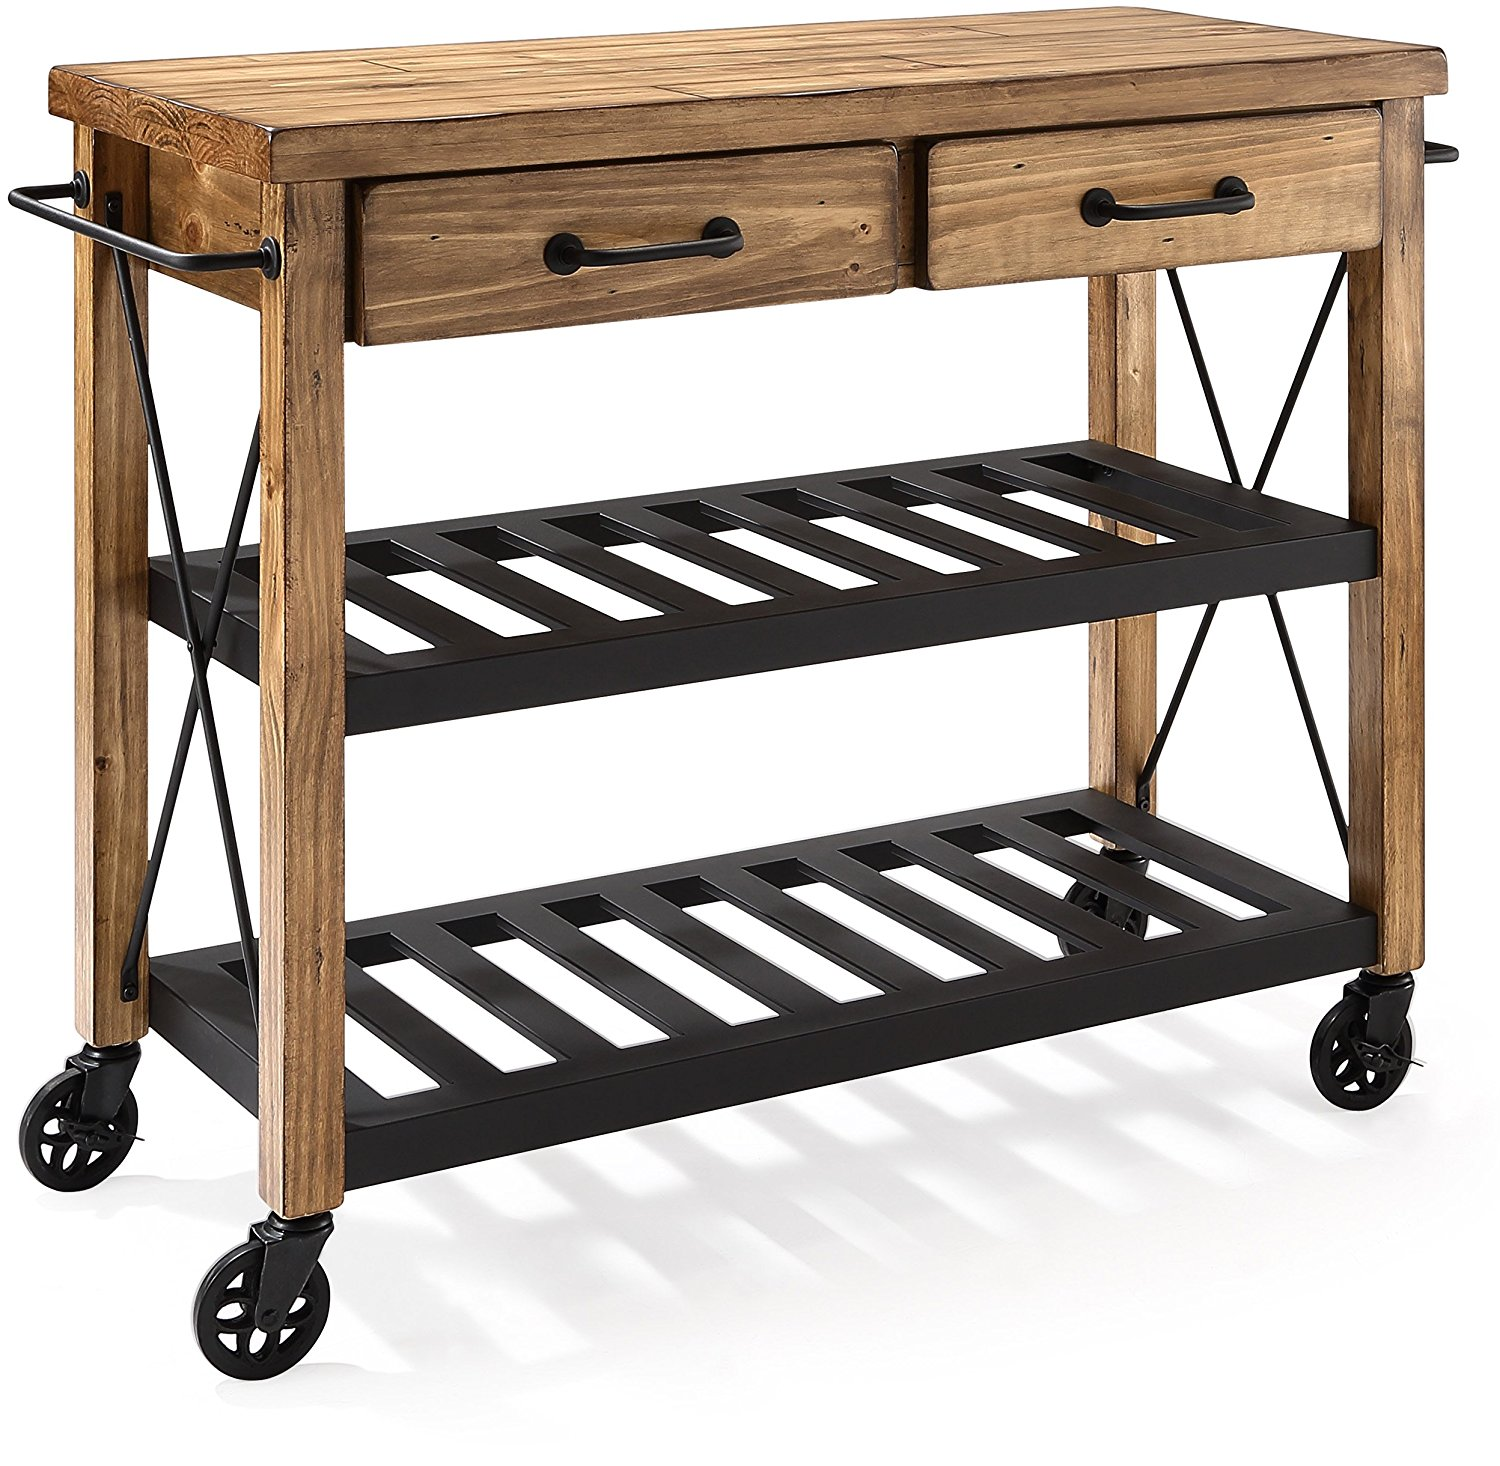 Industrial Rolling Kitchen Cart: Favorite Finds